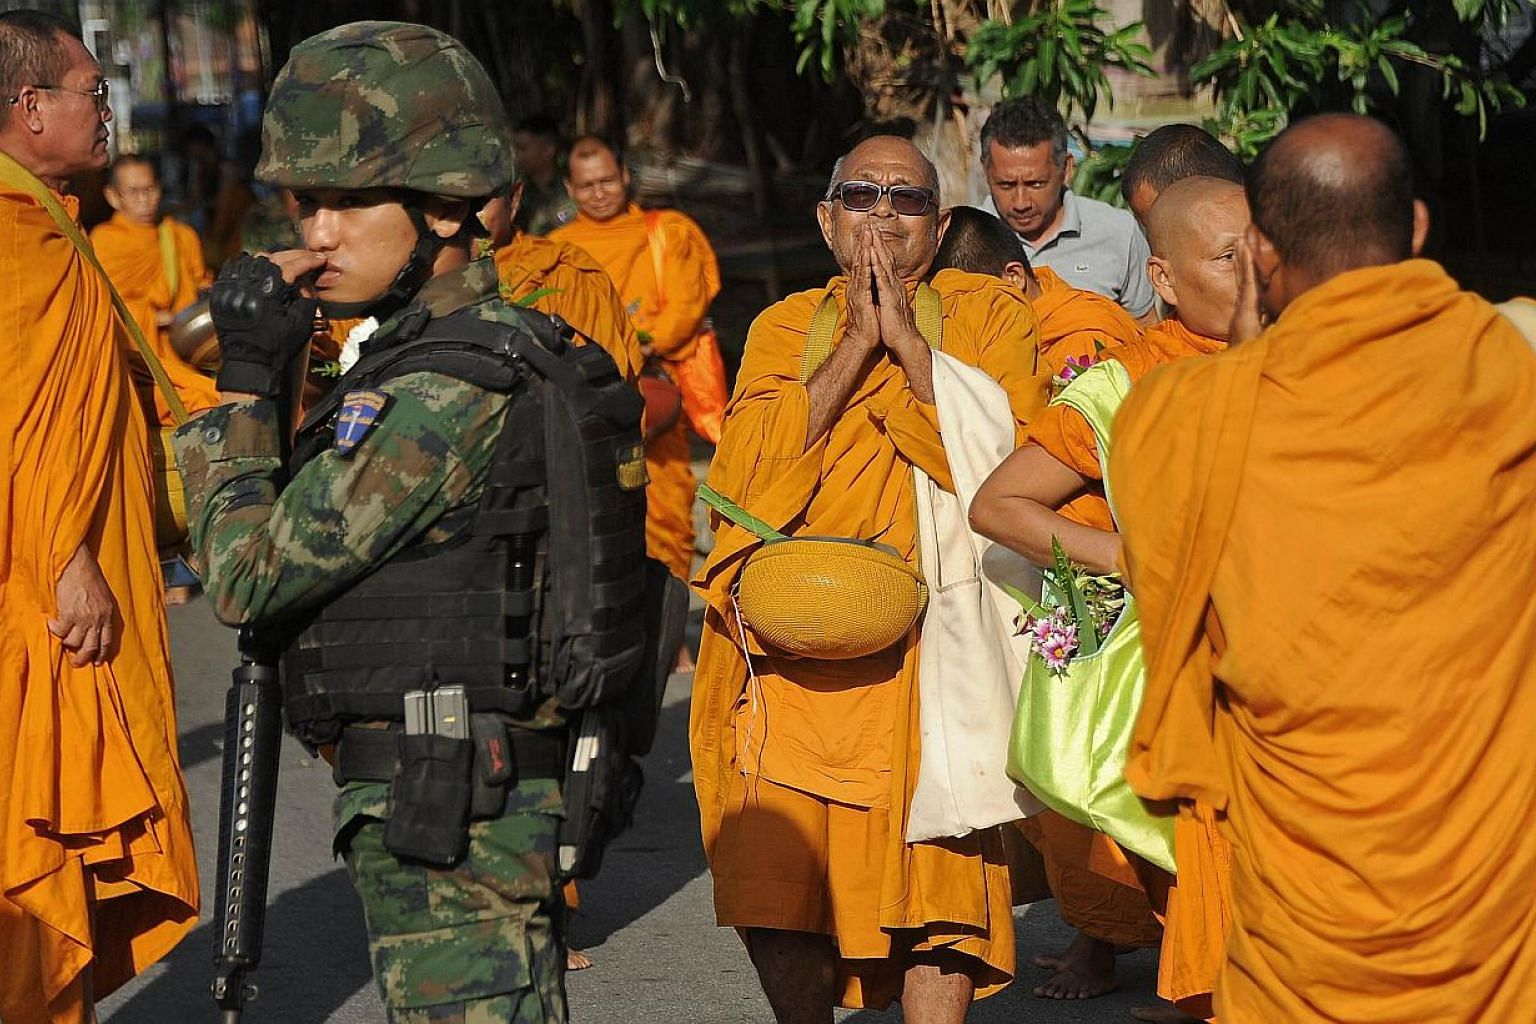 A Thai soldier provides security as Buddhist monks collect alms to mark Princess Maha Chakri Sirindhorn's birthday in Narathiwat, southern Thailand on April 2, 2015.A sweeping new security measure in Thailand that has replaced martial law does